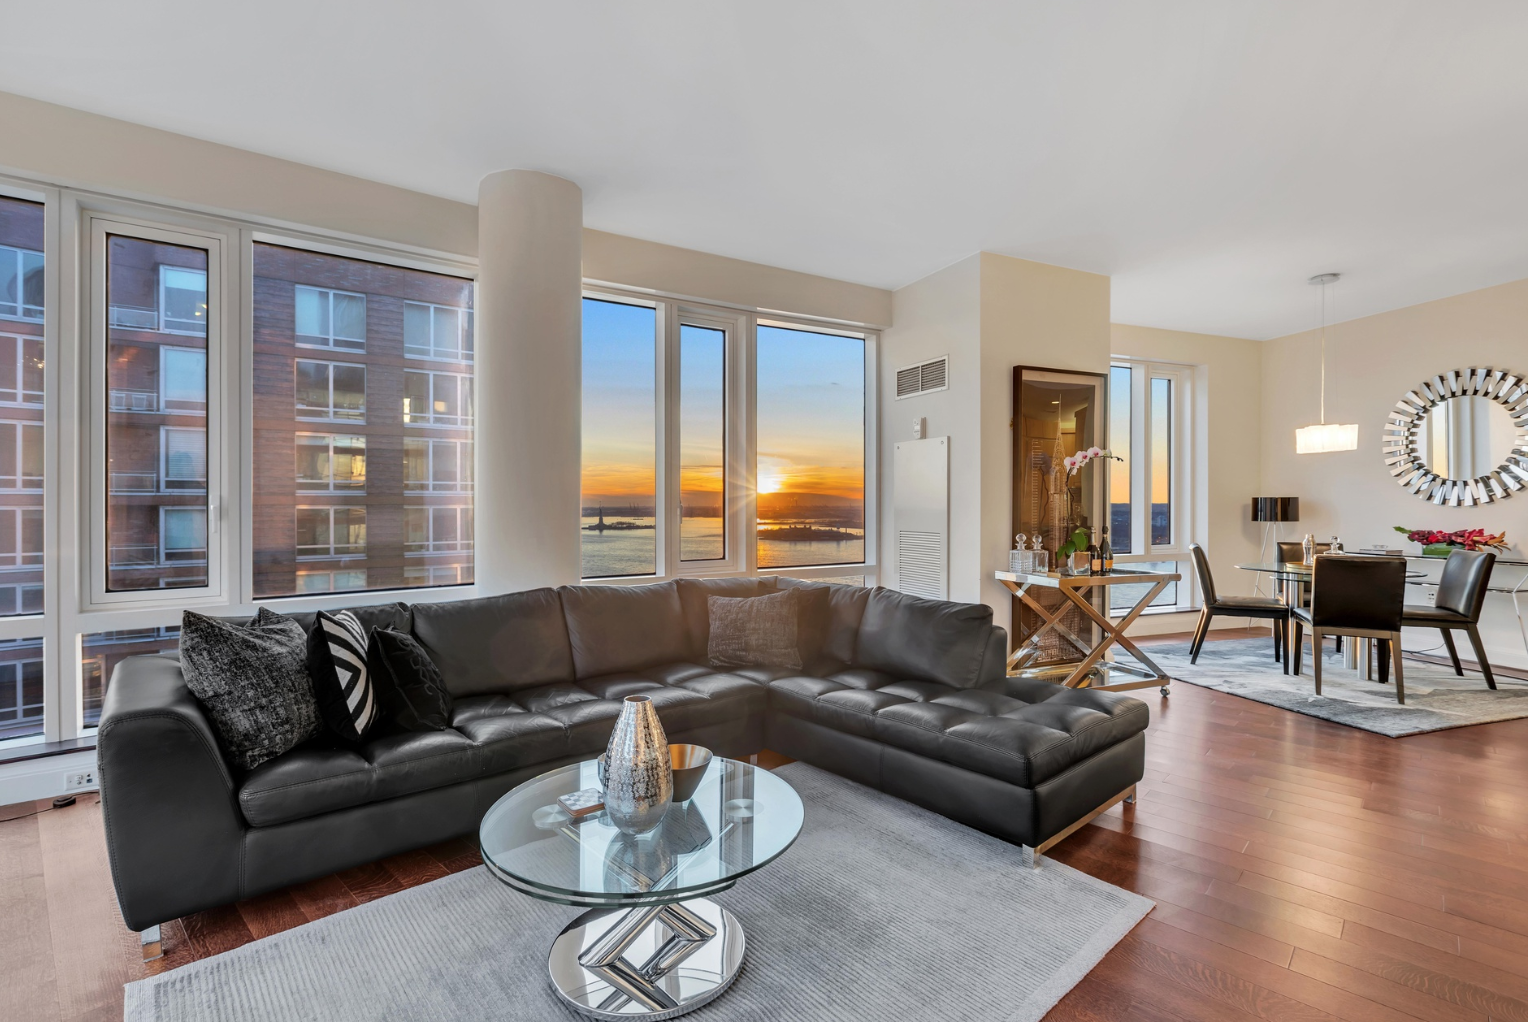 70 LITTLE WEST STREET, 32E - $3,495,000 // 3 Beds // 2.5 Baths // 1,681 SQFTA luminous corner condo set within the first building in NYC to attain LEED Platinum certification, this 3-bedroom, 2.5-bathroom home boasts pristine finishes and incredible views of the Hudson River and the Upper Bay. Features of the apartment include gorgeous hardwood floors, huge windows with eastern and southern, central heating and cooling, and a convenient in-unit washer/dryer.